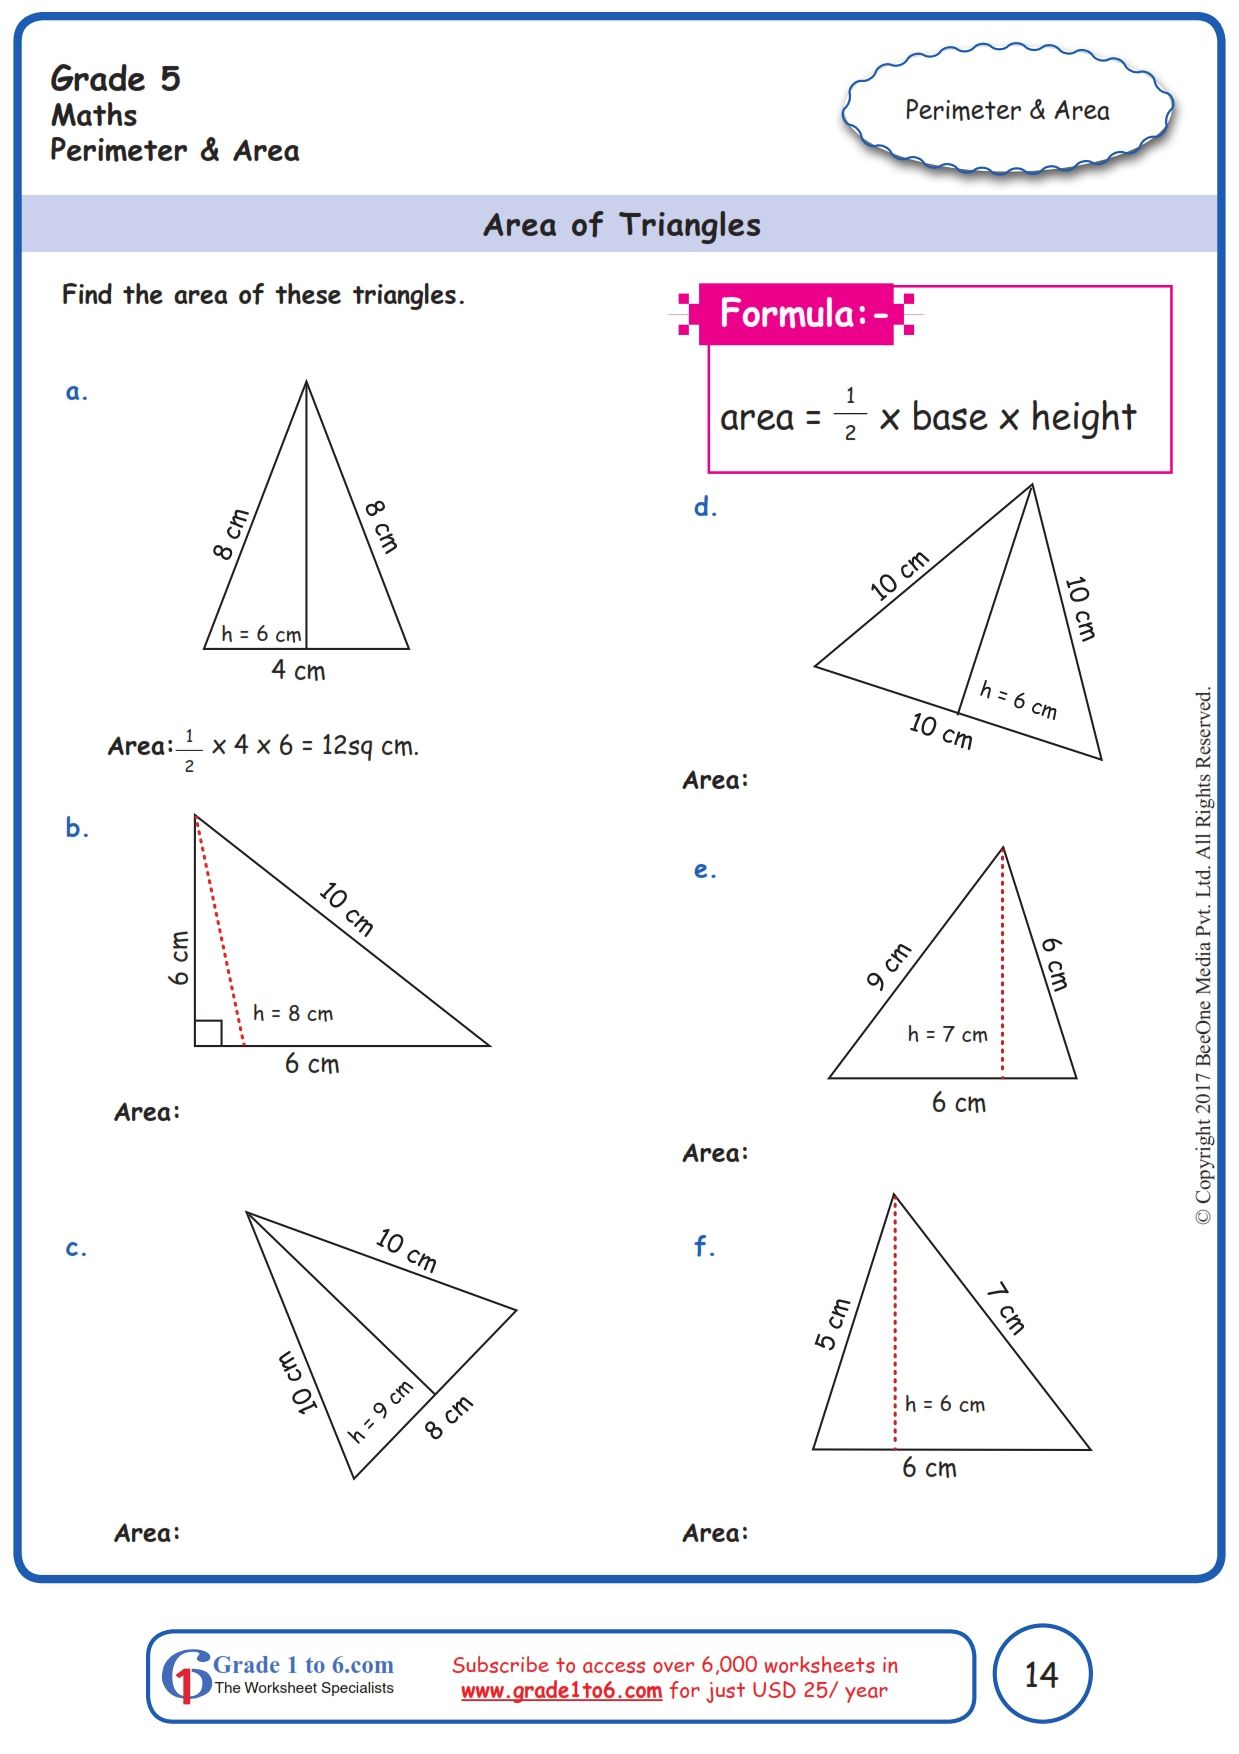 6th Grade Math Area Of Triangle Worksheets   Printable Worksheets and  Activities for Teachers [ 1754 x 1239 Pixel ]